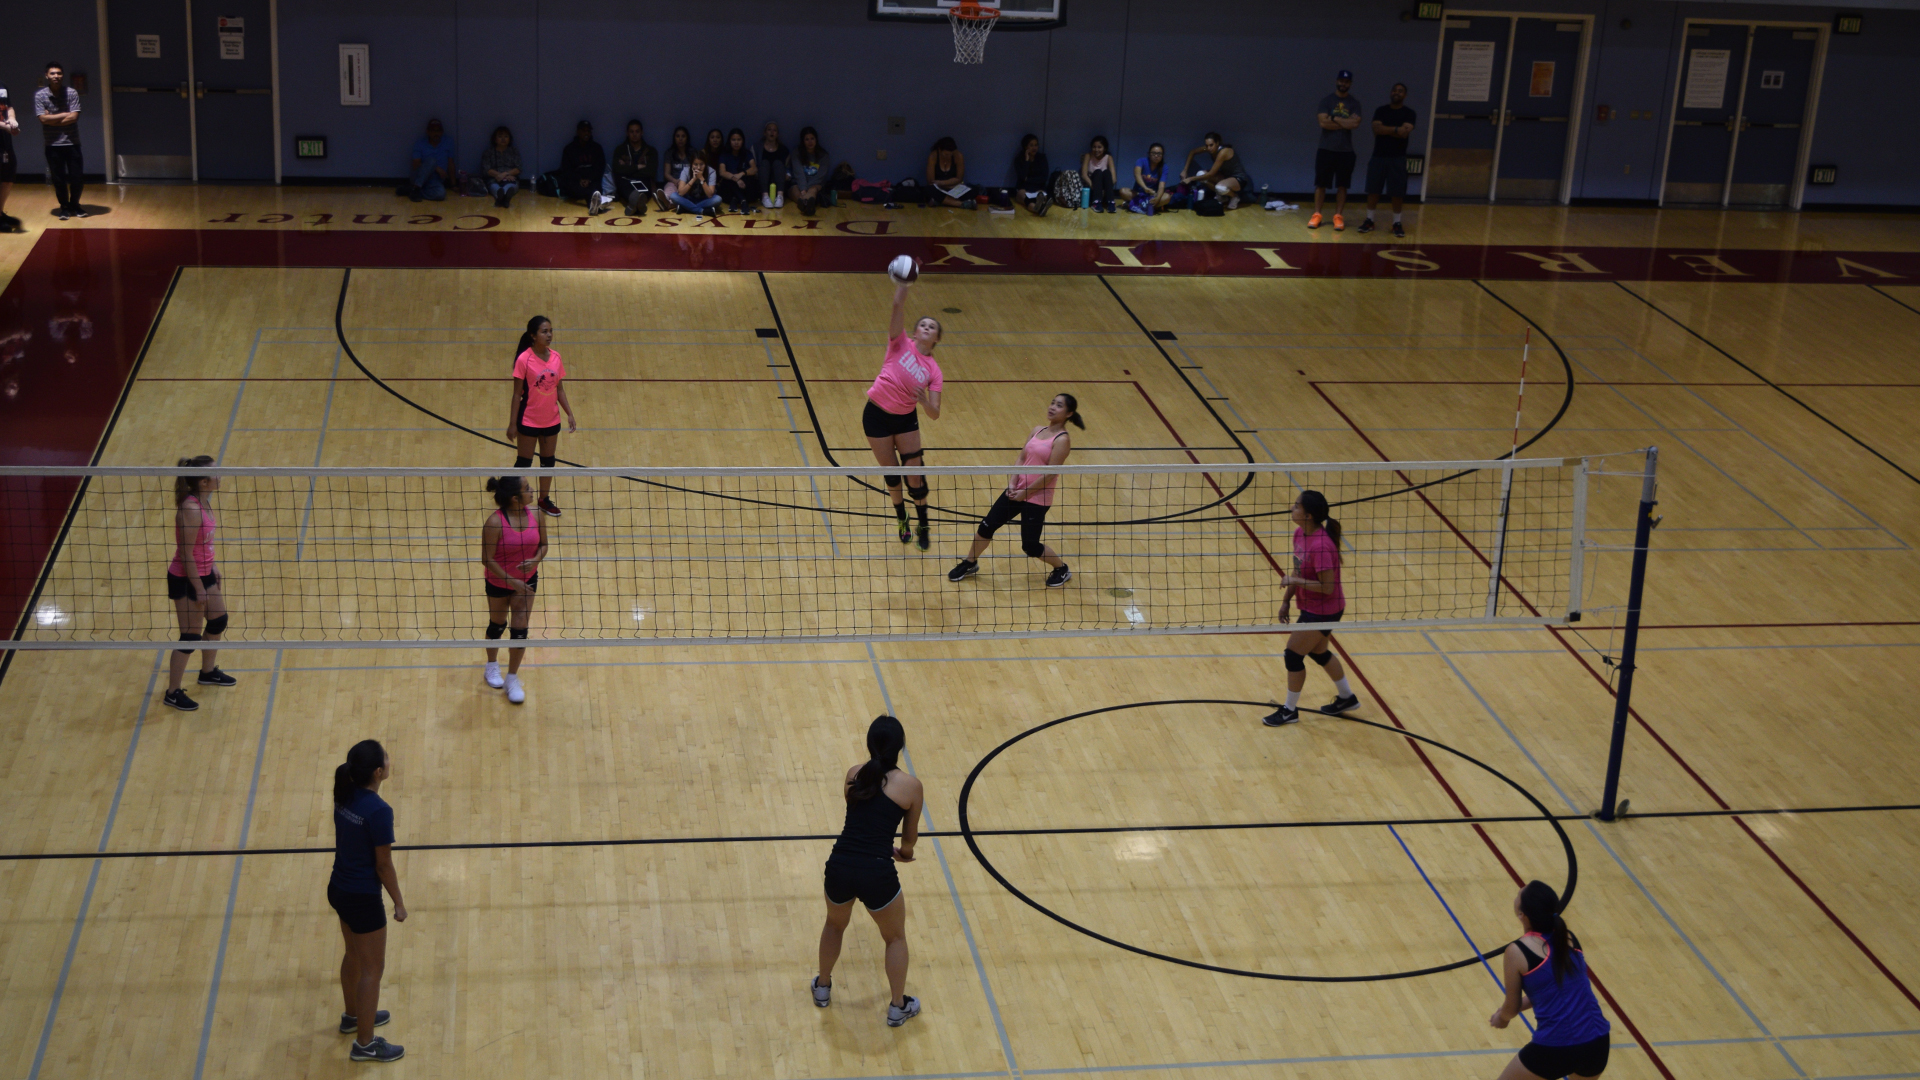 Women's volleyball match